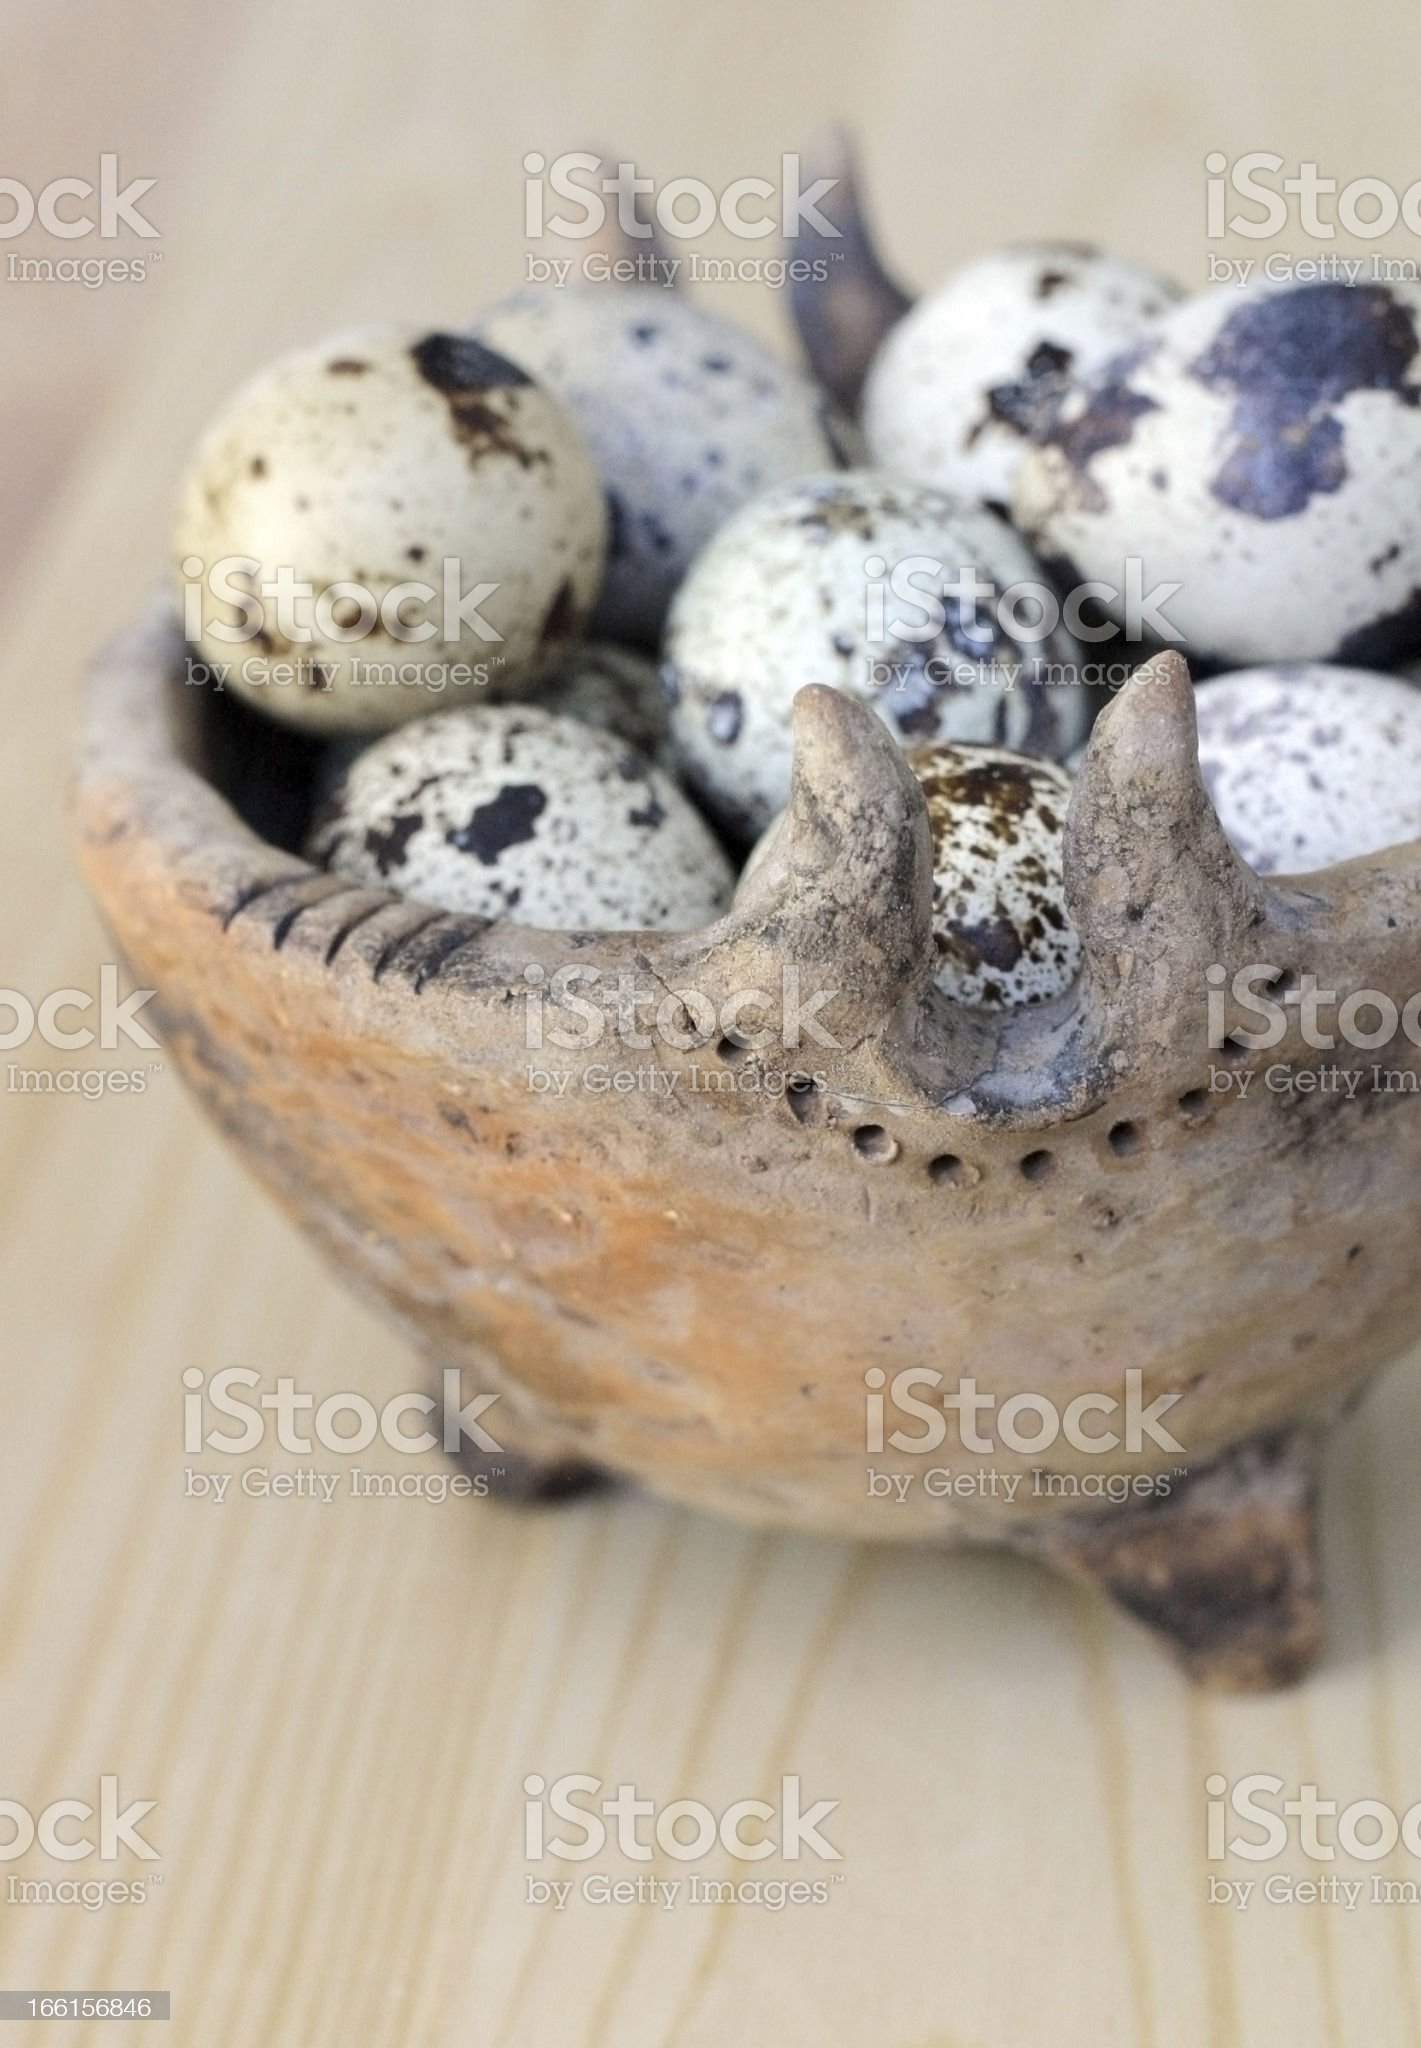 Spotted Eggs. royalty-free stock photo